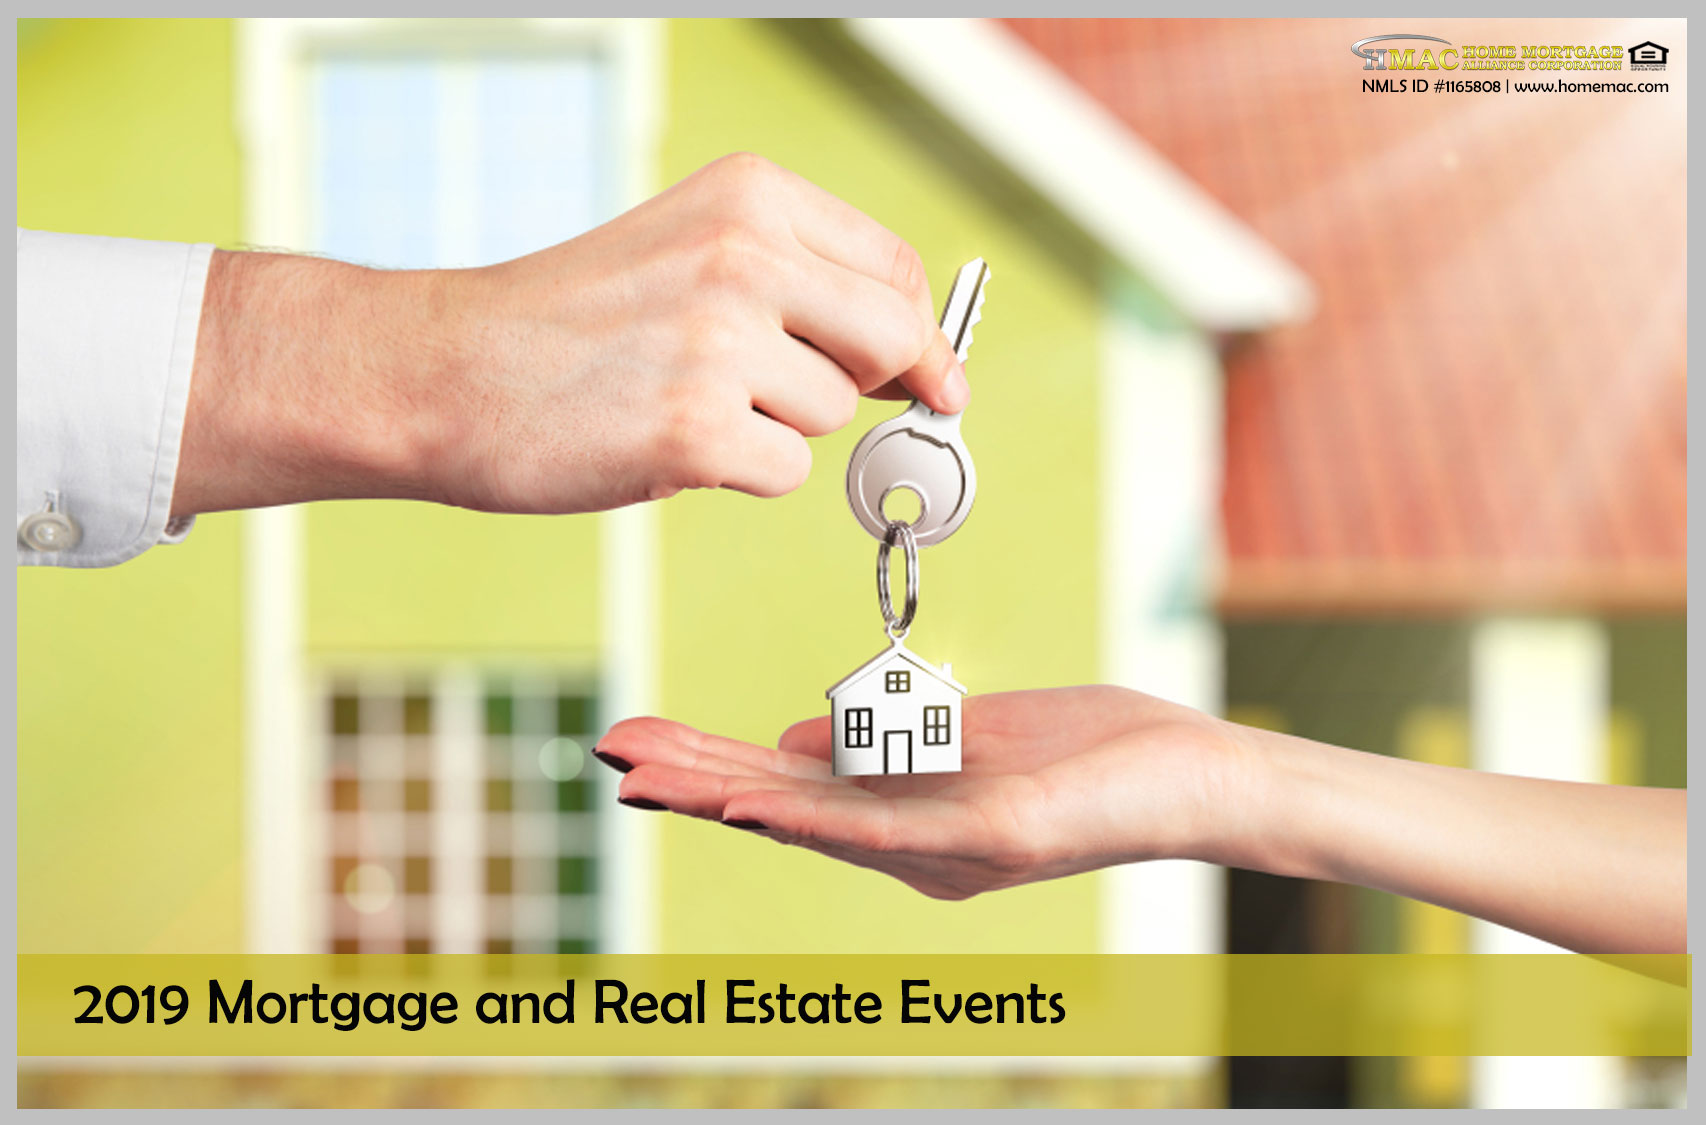 List 2019 Real Estate and Mortgage Events - United States